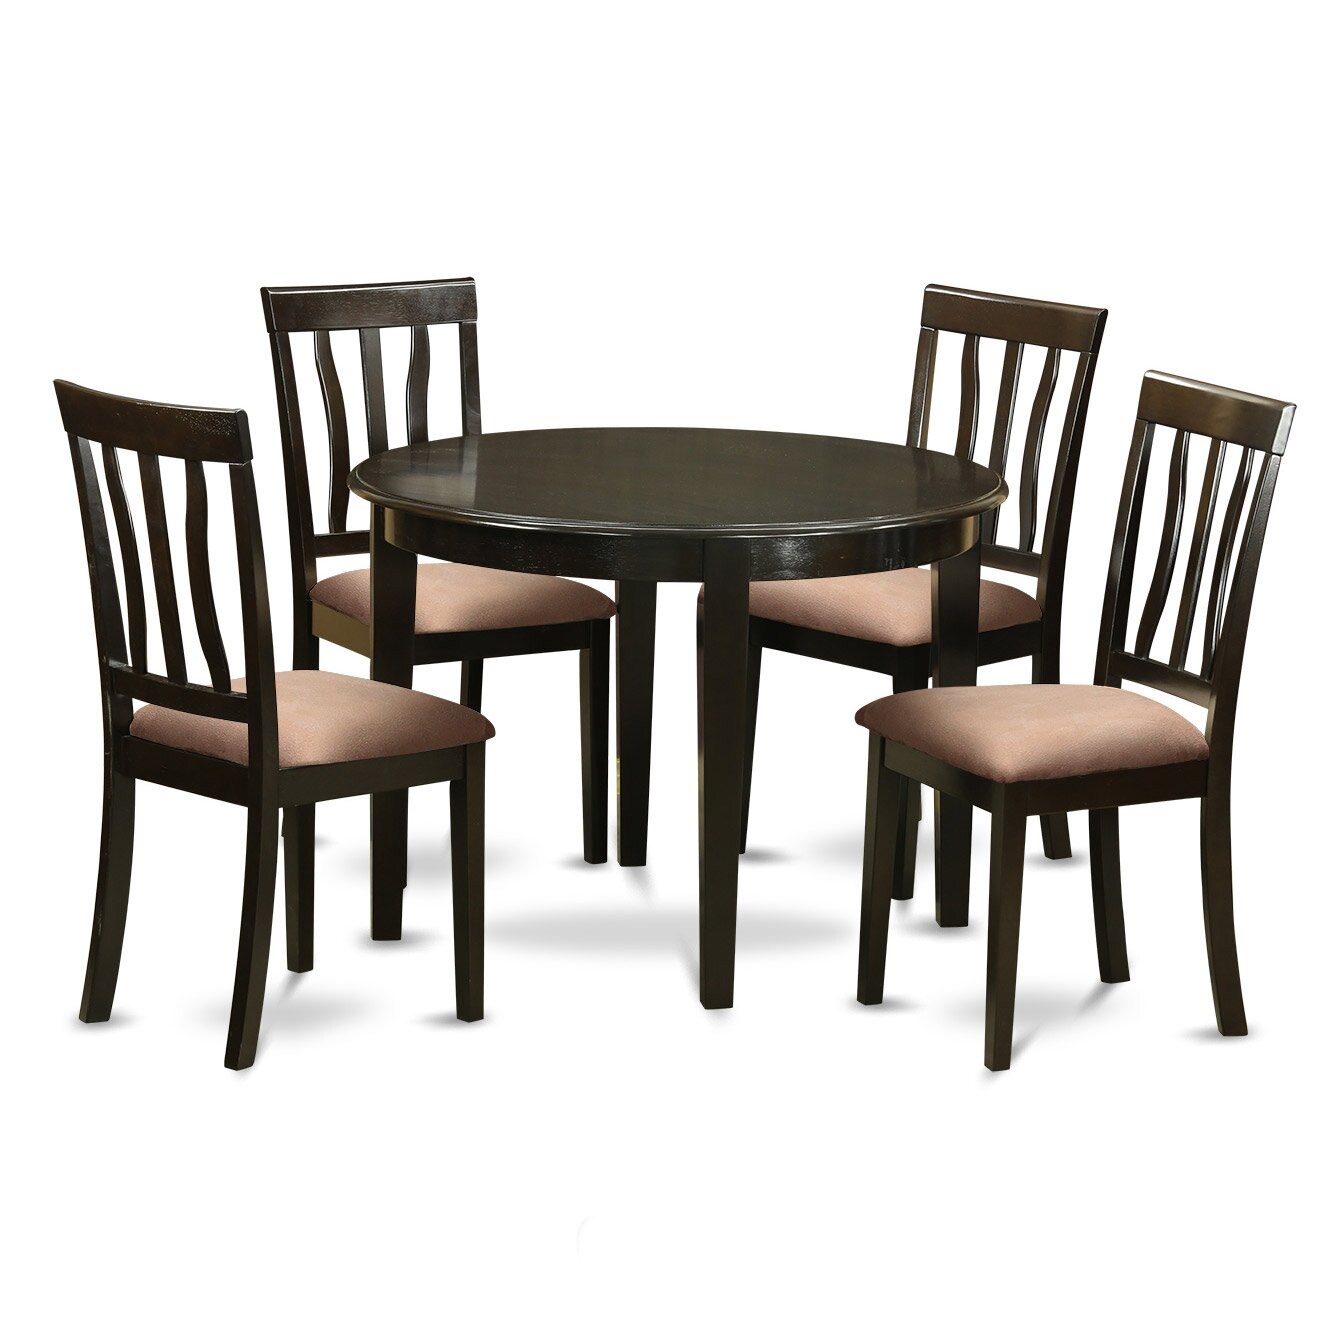 Wooden importers boston 5 piece dining set wayfair for Small kitchen furniture